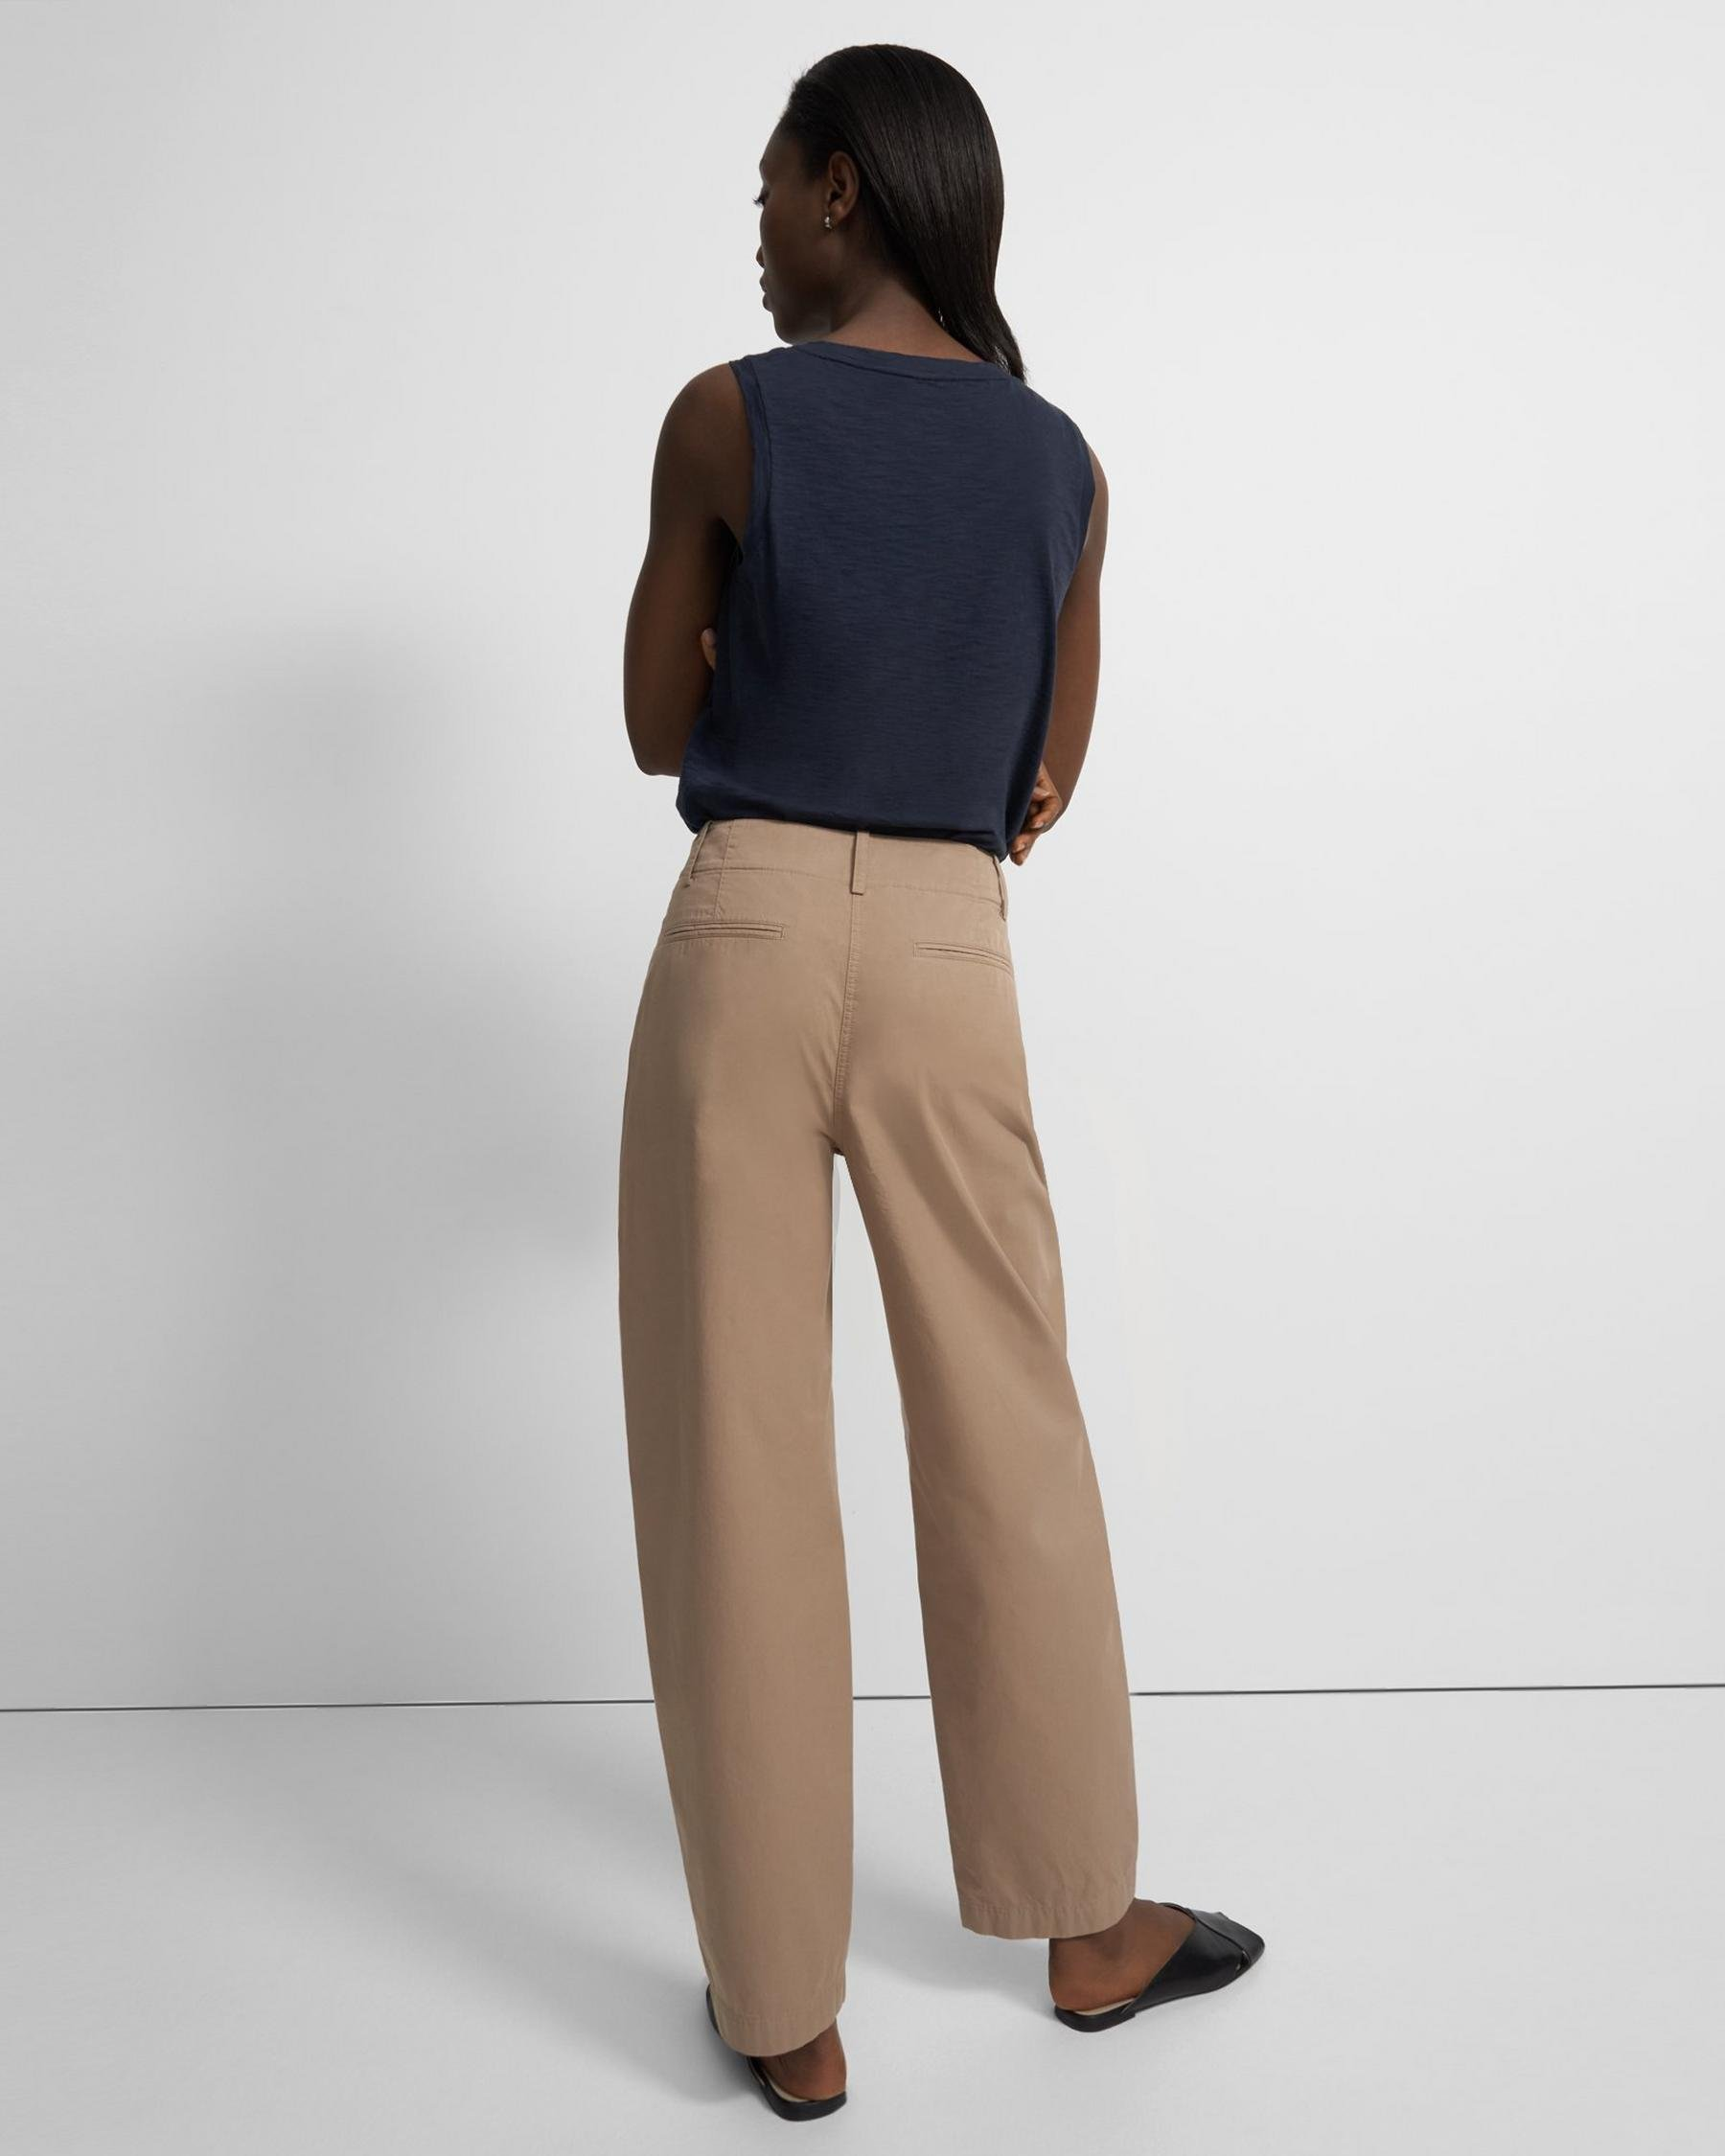 Curve Pant in Garment-Dyed Cotton 2